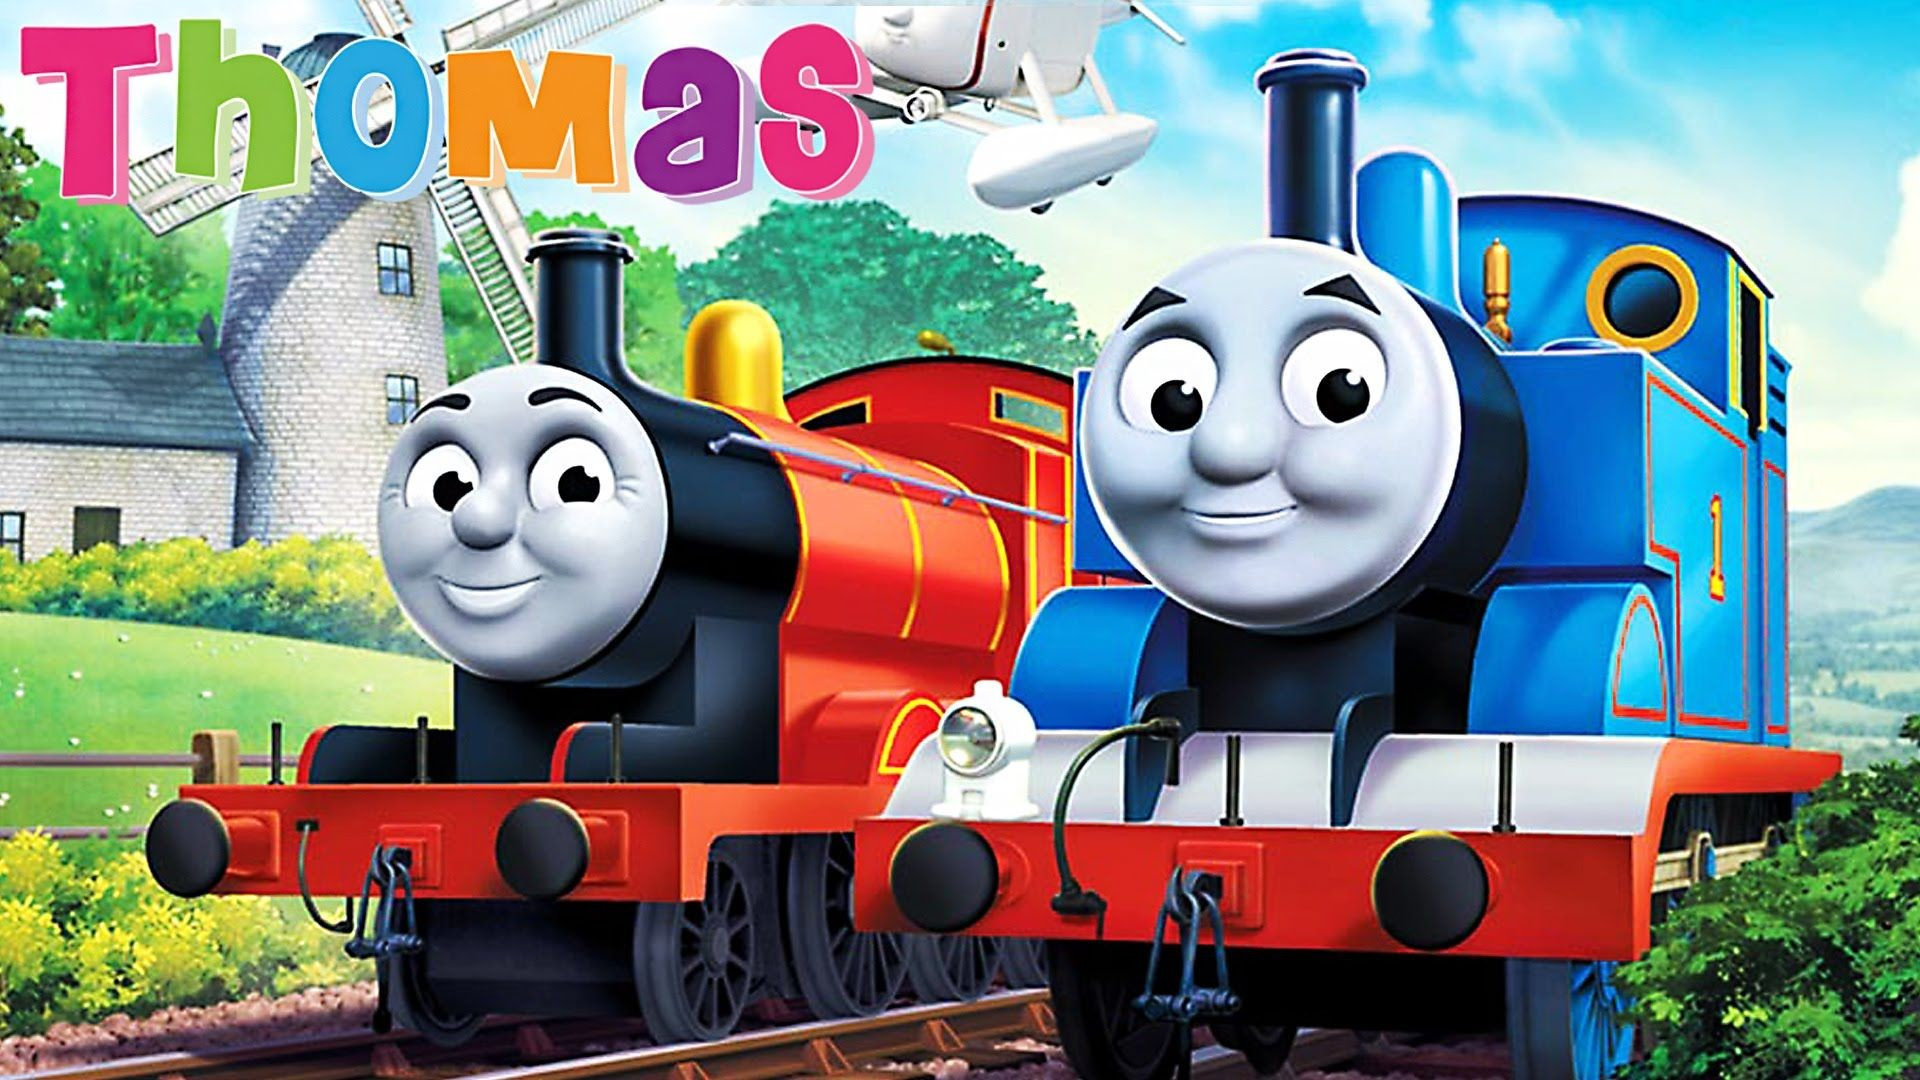 1920x1080 Thomas The Tank Engine Wallpaper | Free | Download